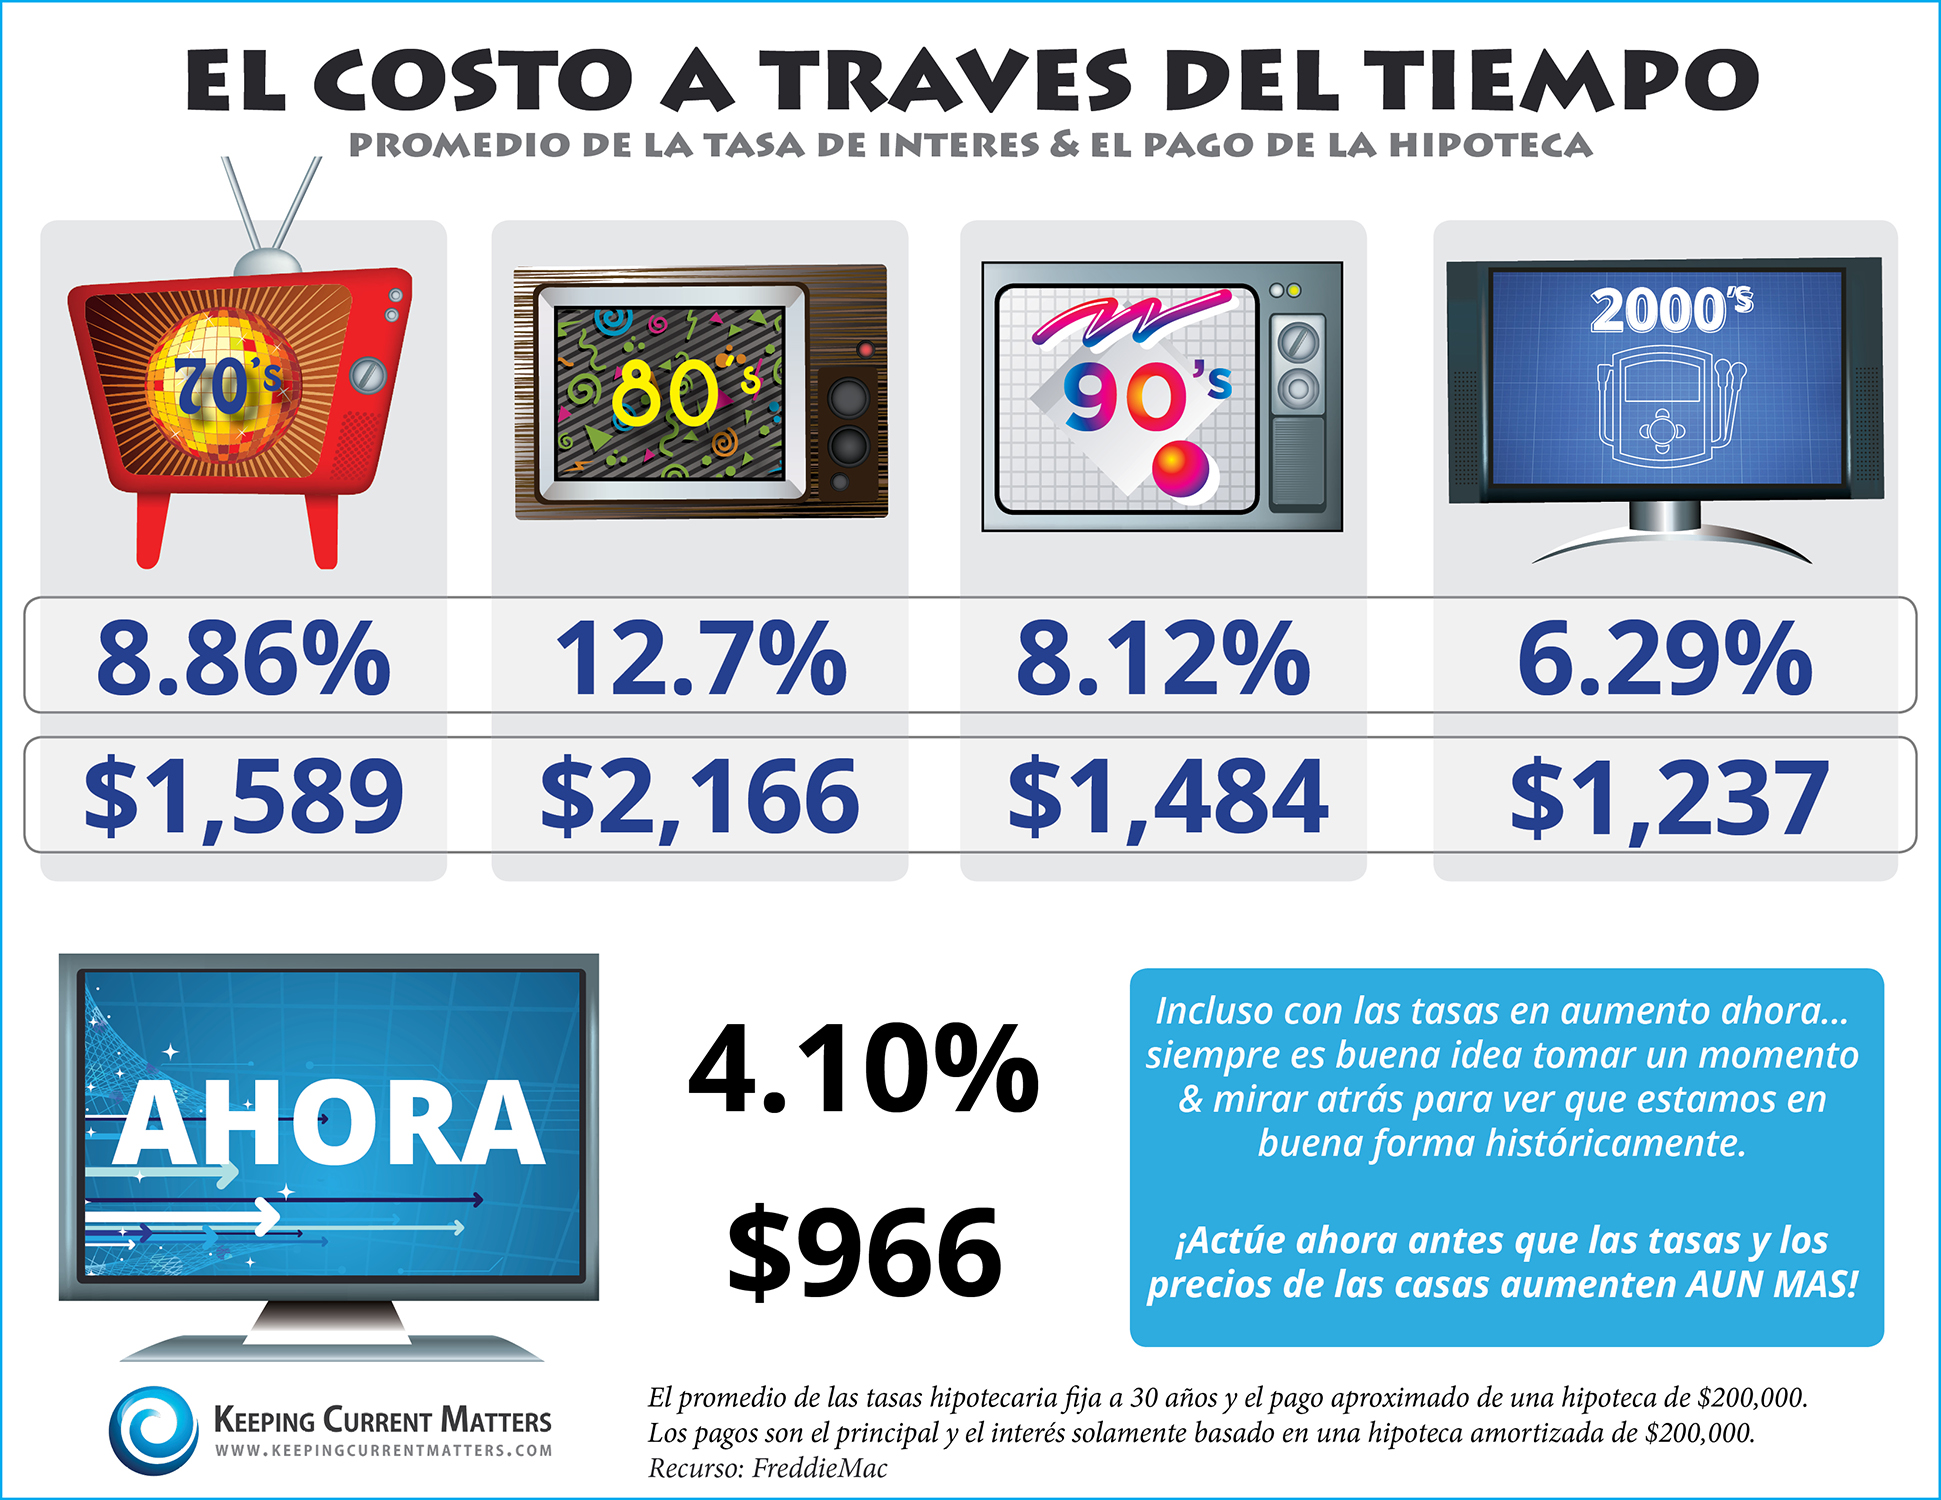 El Costo a Traves Del Tiempo [INFOGRAFIA] | Keeping Current Matters